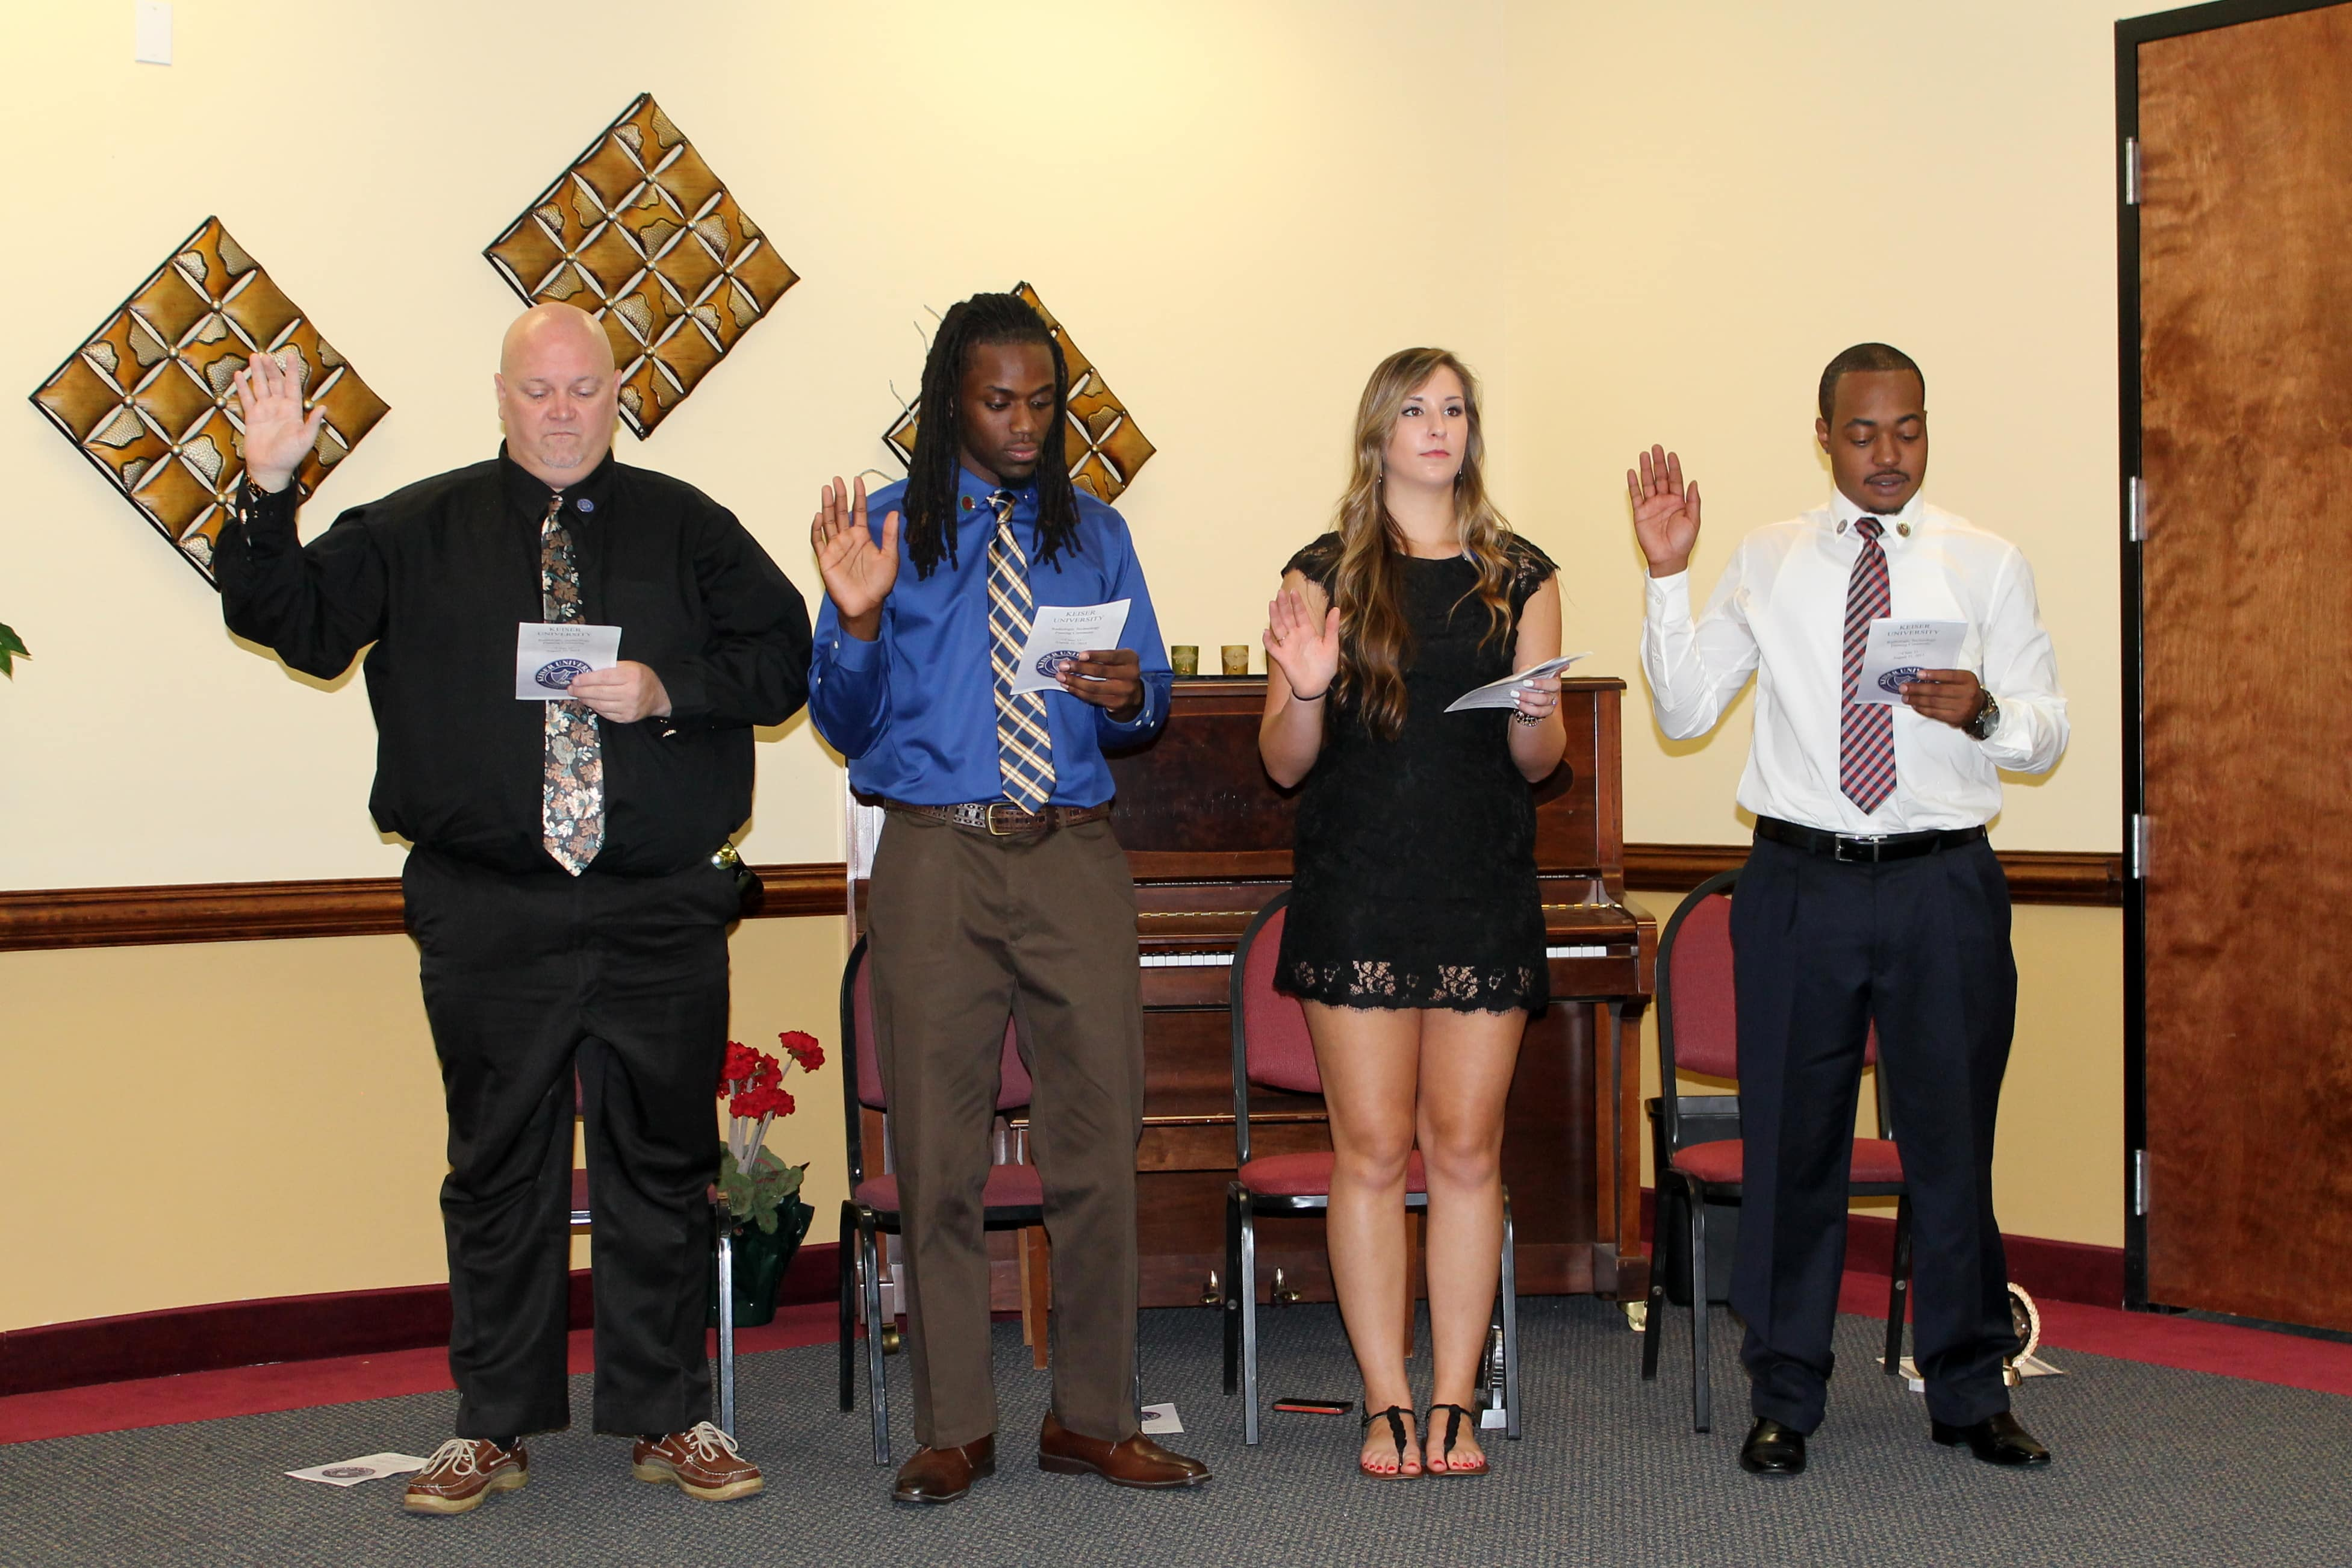 Tallahassee Holds a Pinning Ceremony for Radiologic Technology Students